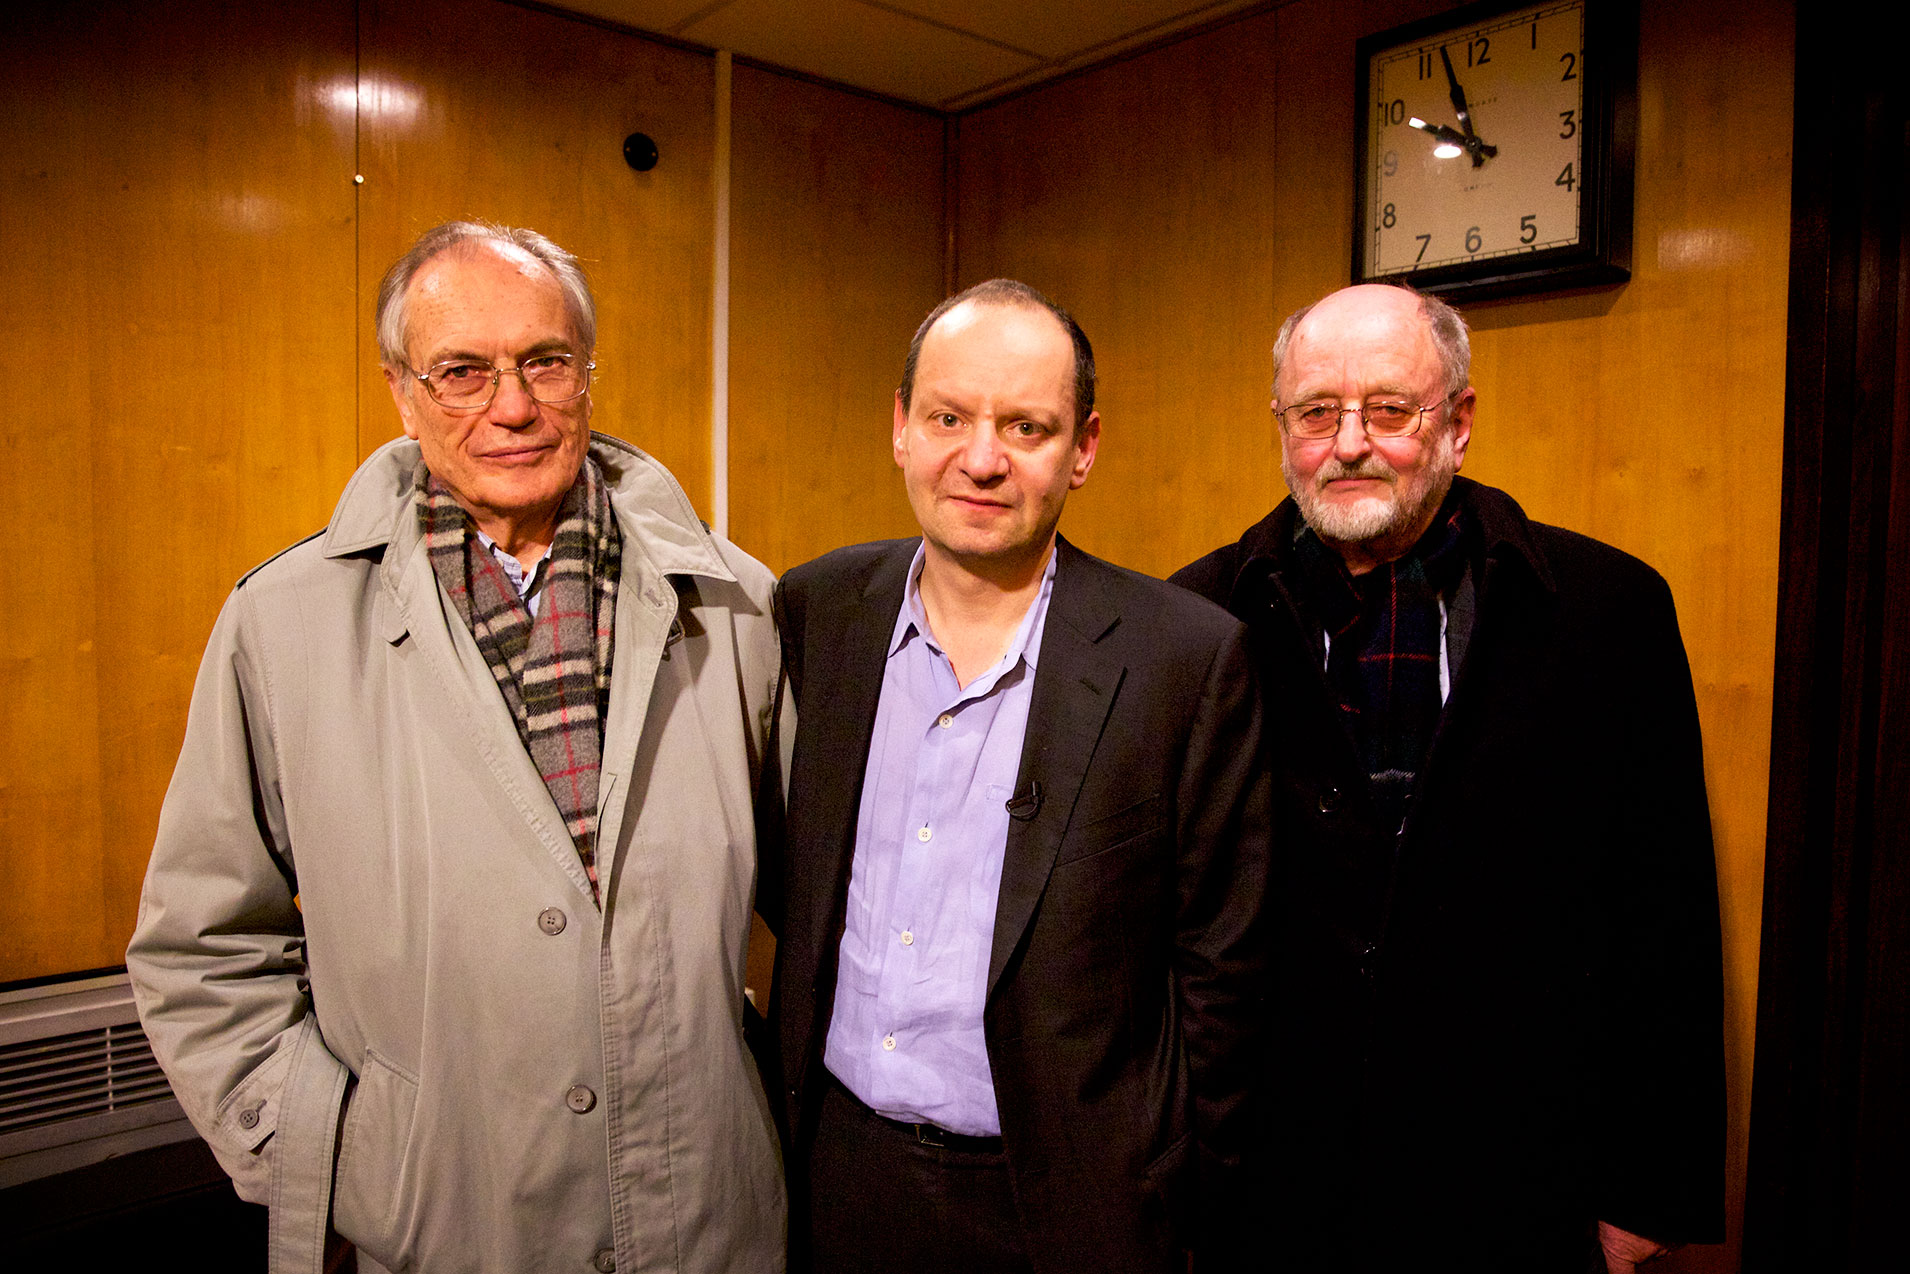 From left to right: Horst van Wächter, Philippe Sands, and Niklas Frank